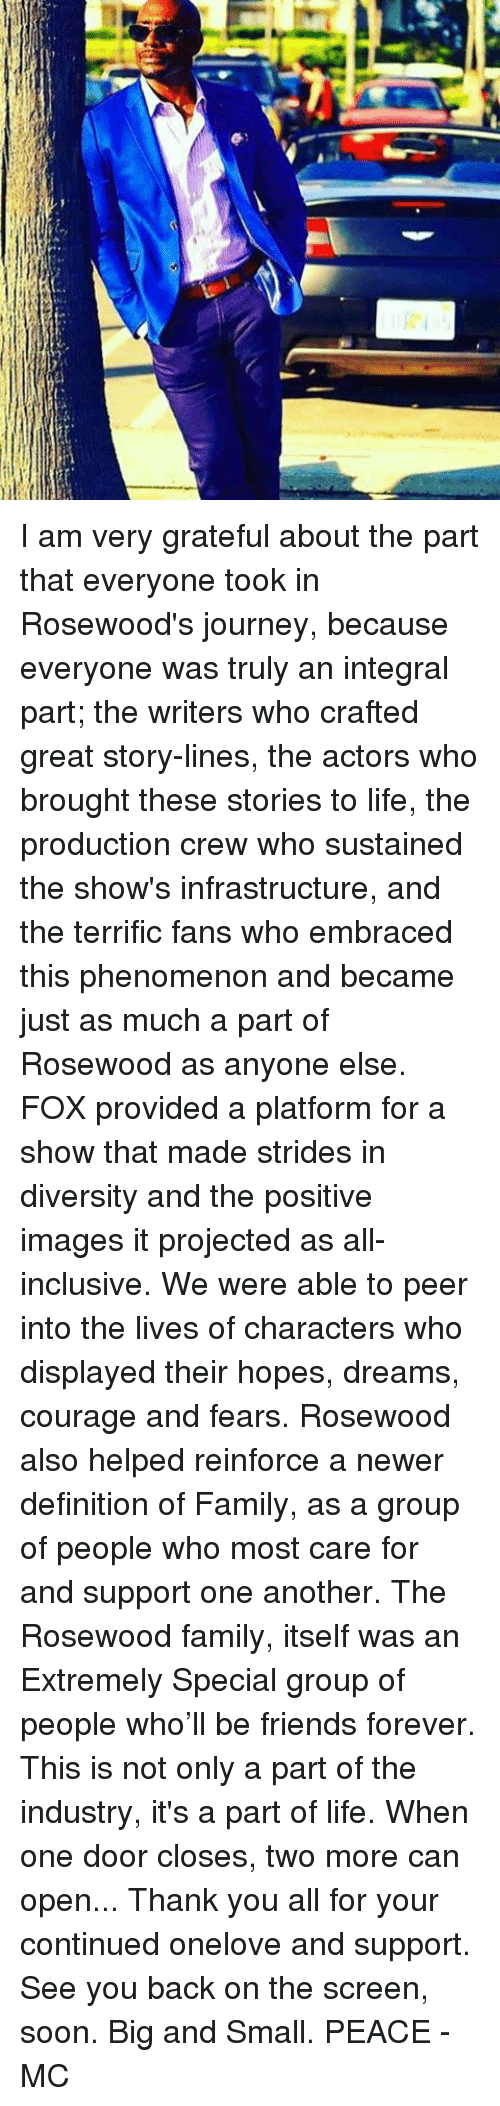 Family, Friends, and Journey: I am very grateful about the part that everyone took in Rosewood's journey, because everyone was truly an integral part; the writers who crafted great story-lines, the actors who brought these stories to life, the production crew who sustained the show's infrastructure, and the terrific fans who embraced this phenomenon and became just as much a part of Rosewood as anyone else. FOX provided a platform for a show that made strides in diversity and the positive images it projected as all-inclusive. We were able to peer into the lives of characters who displayed their hopes, dreams, courage and fears. Rosewood also helped reinforce a newer definition of Family, as a group of people who most care for and support one another. The Rosewood family, itself was an Extremely Special group of people who'll be friends forever. This is not only a part of the industry, it's a part of life. When one door closes, two more can open... Thank you all for your continued onelove and support. See you back on the screen, soon. Big and Small. PEACE - MC